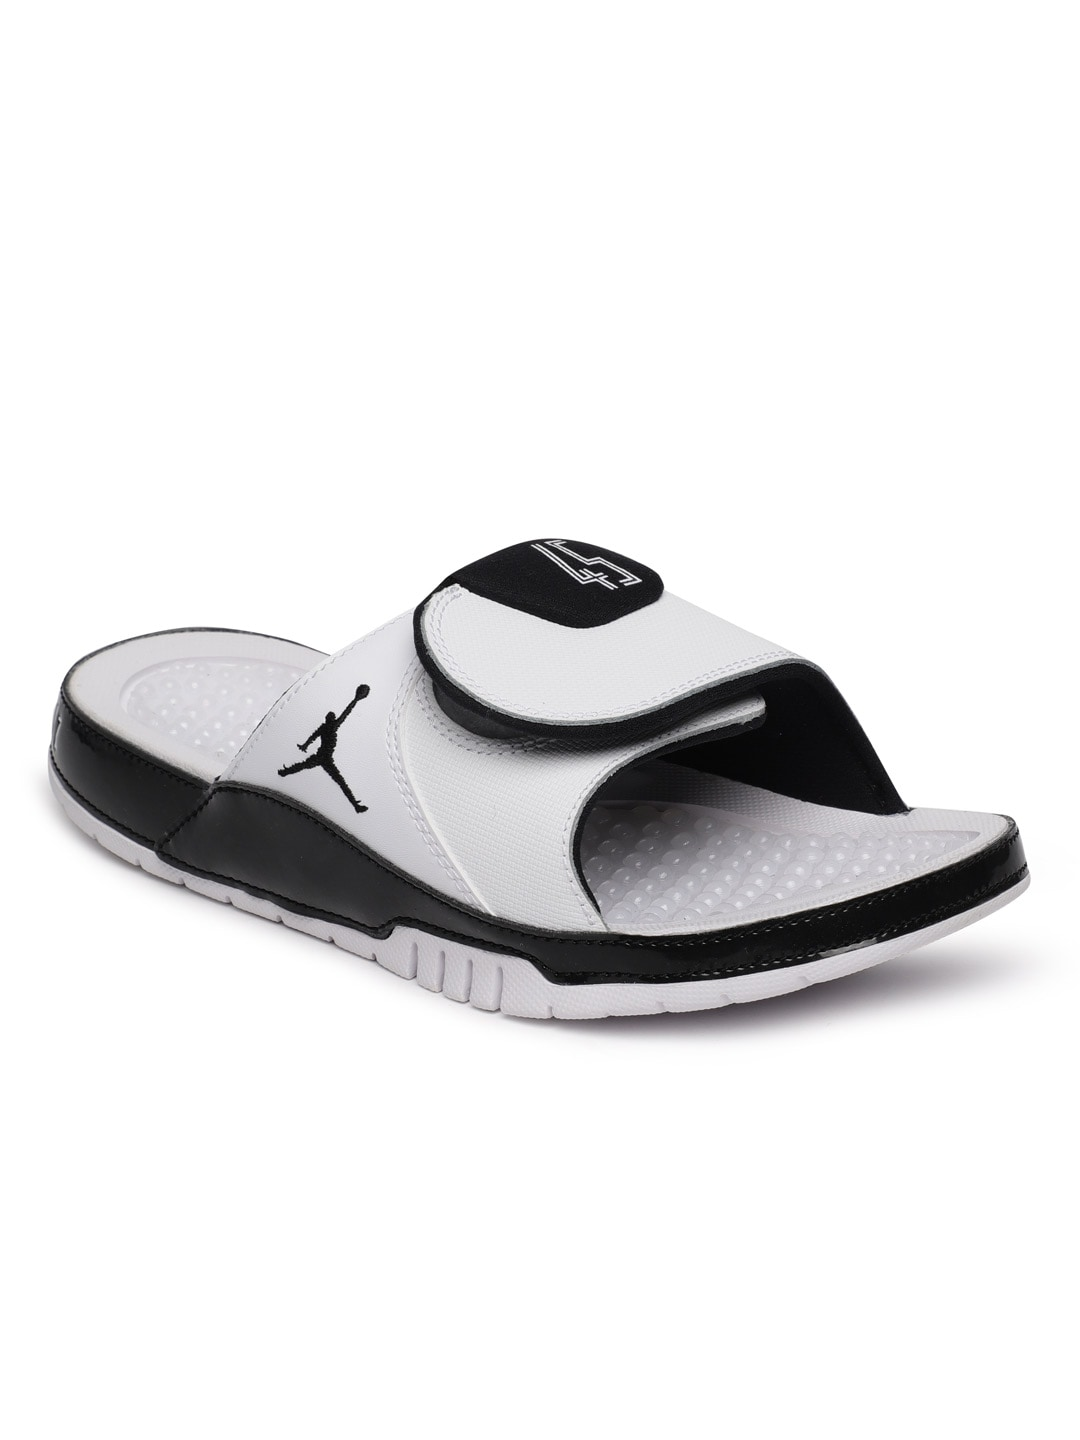 25087d5b75be Nike Jordan Shoes - Buy Nike Jordan Shoes online in India